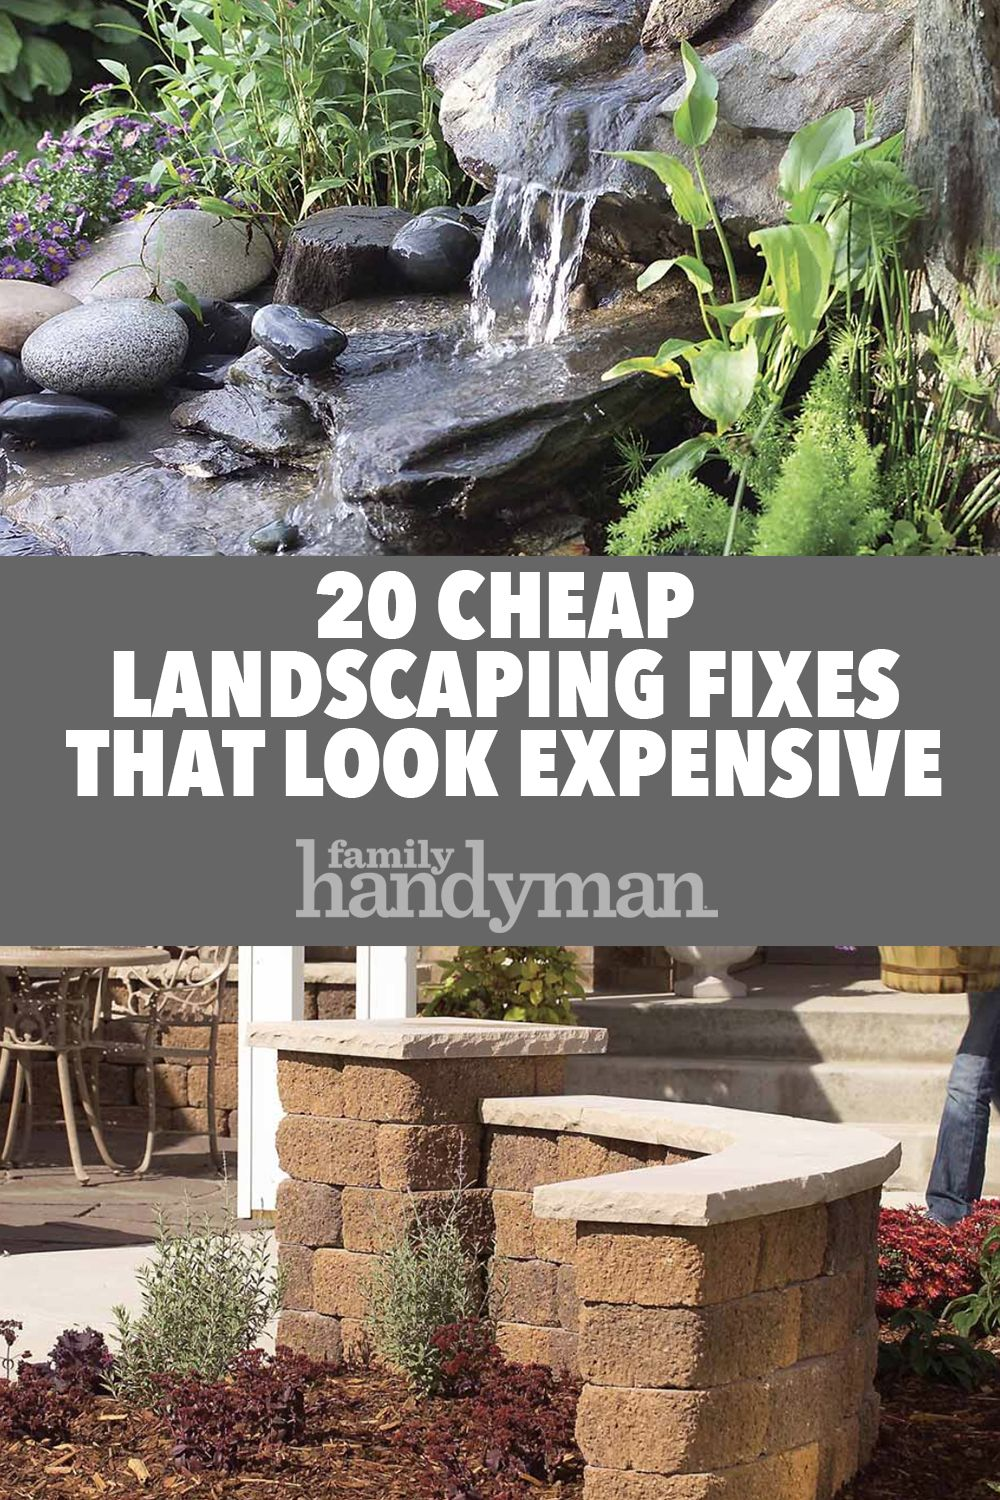 20 Cheap Landscaping Fixes That Look Expensive Home Landscaping